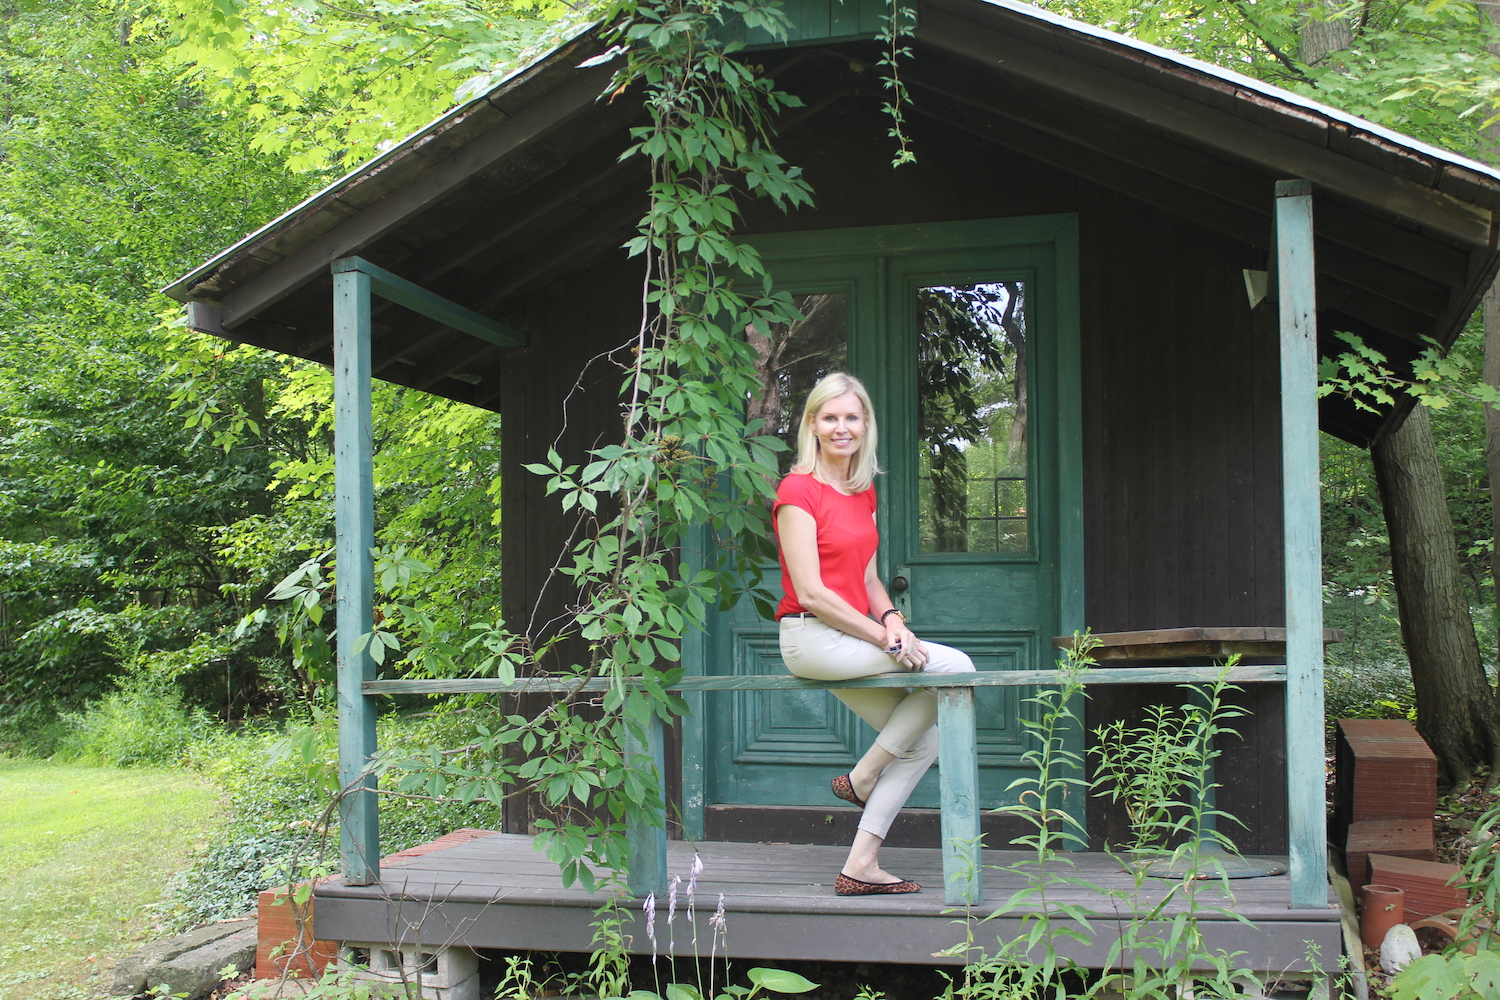 Jackie discovers an abandoned shed on her new property